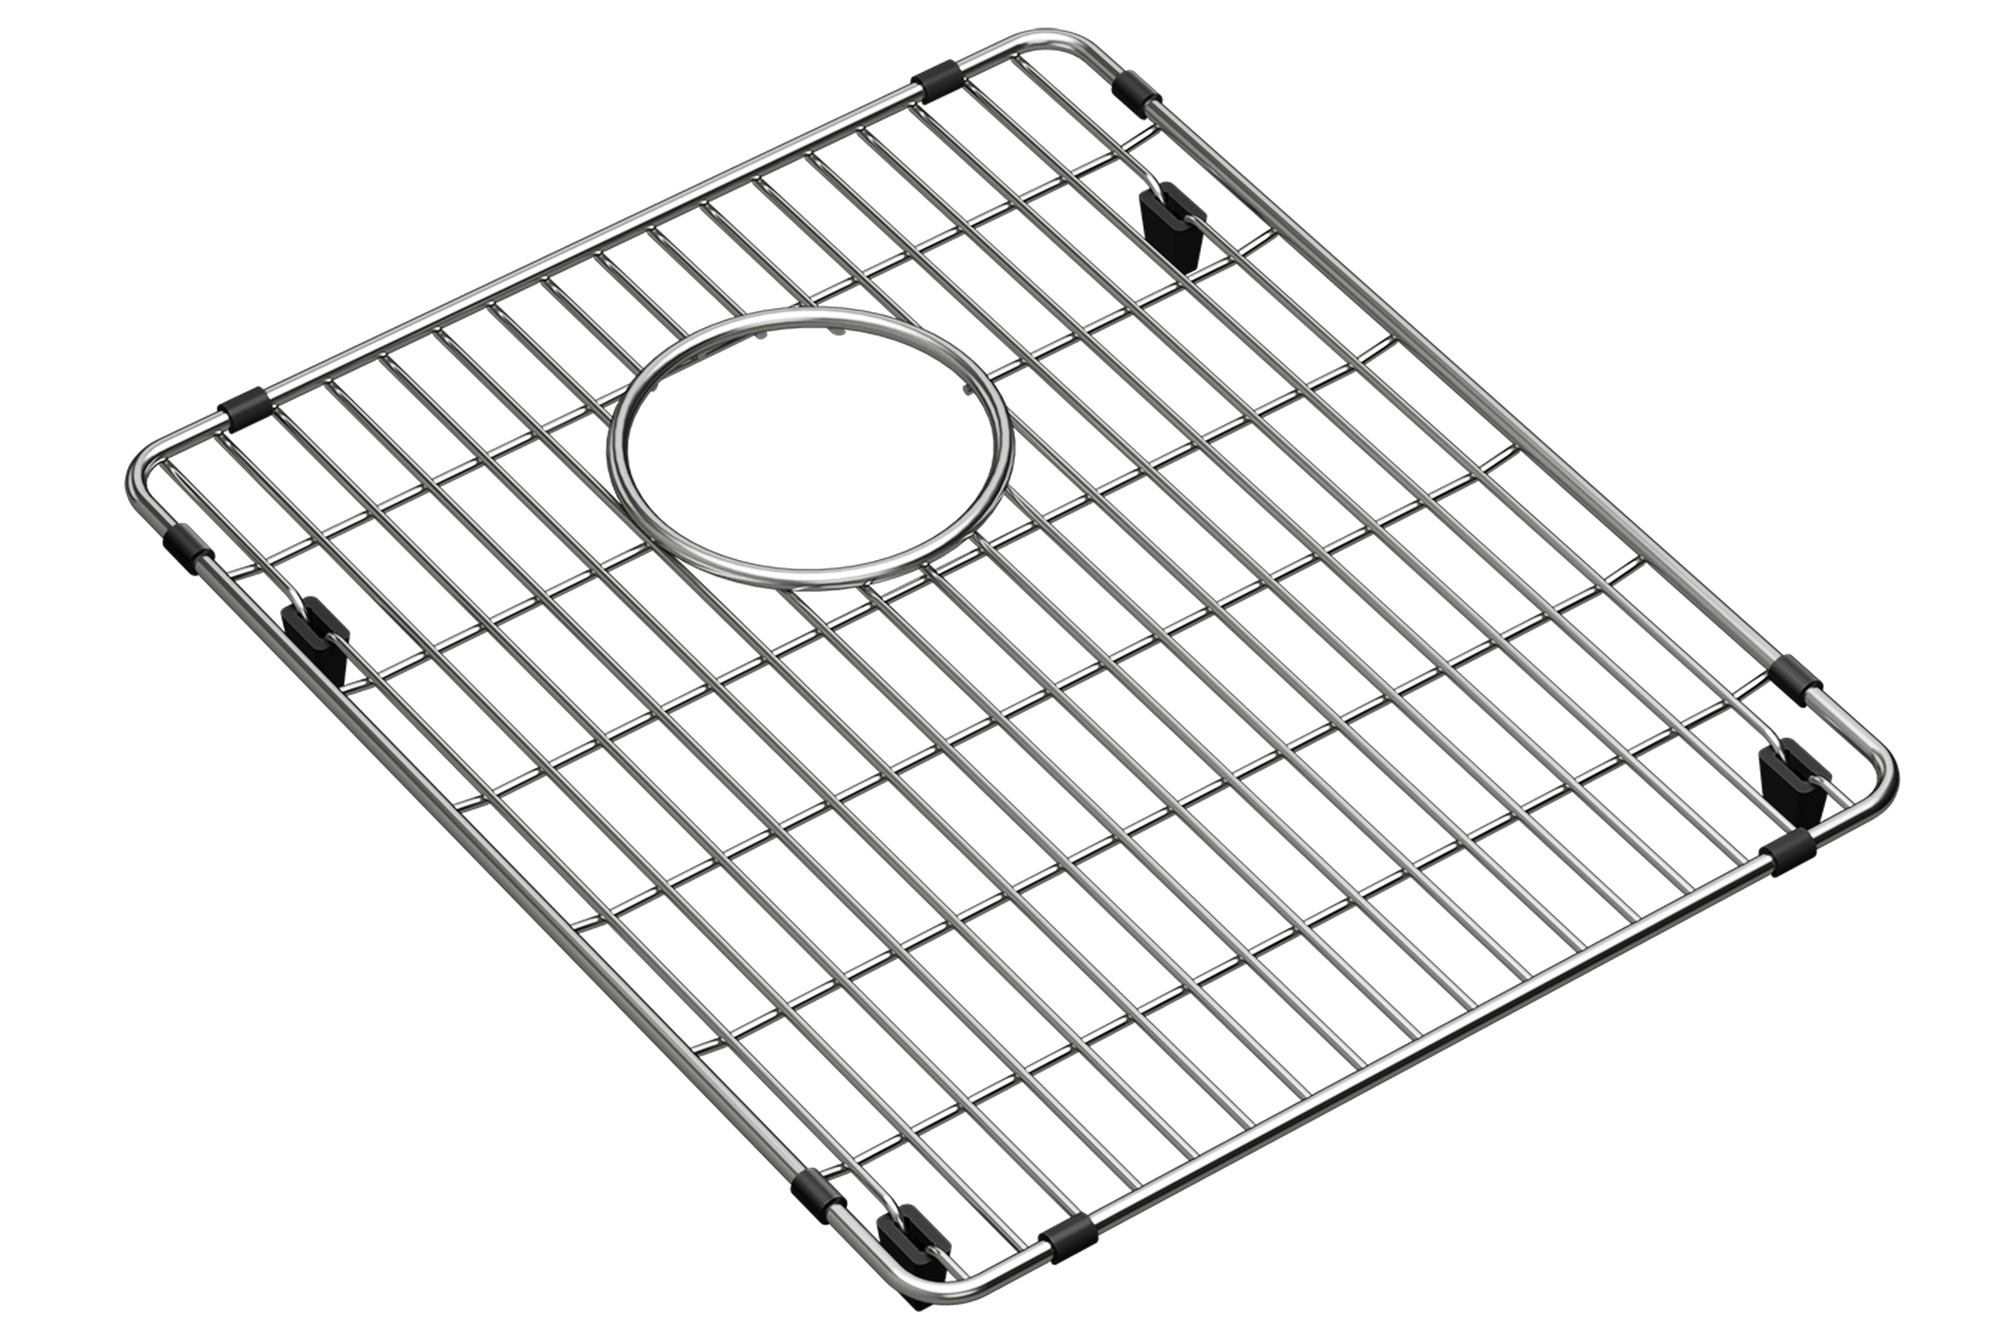 Elkay Crosstown Stainless Steel 13 X 15 1 2 X 1 1 4 Bottom Grid